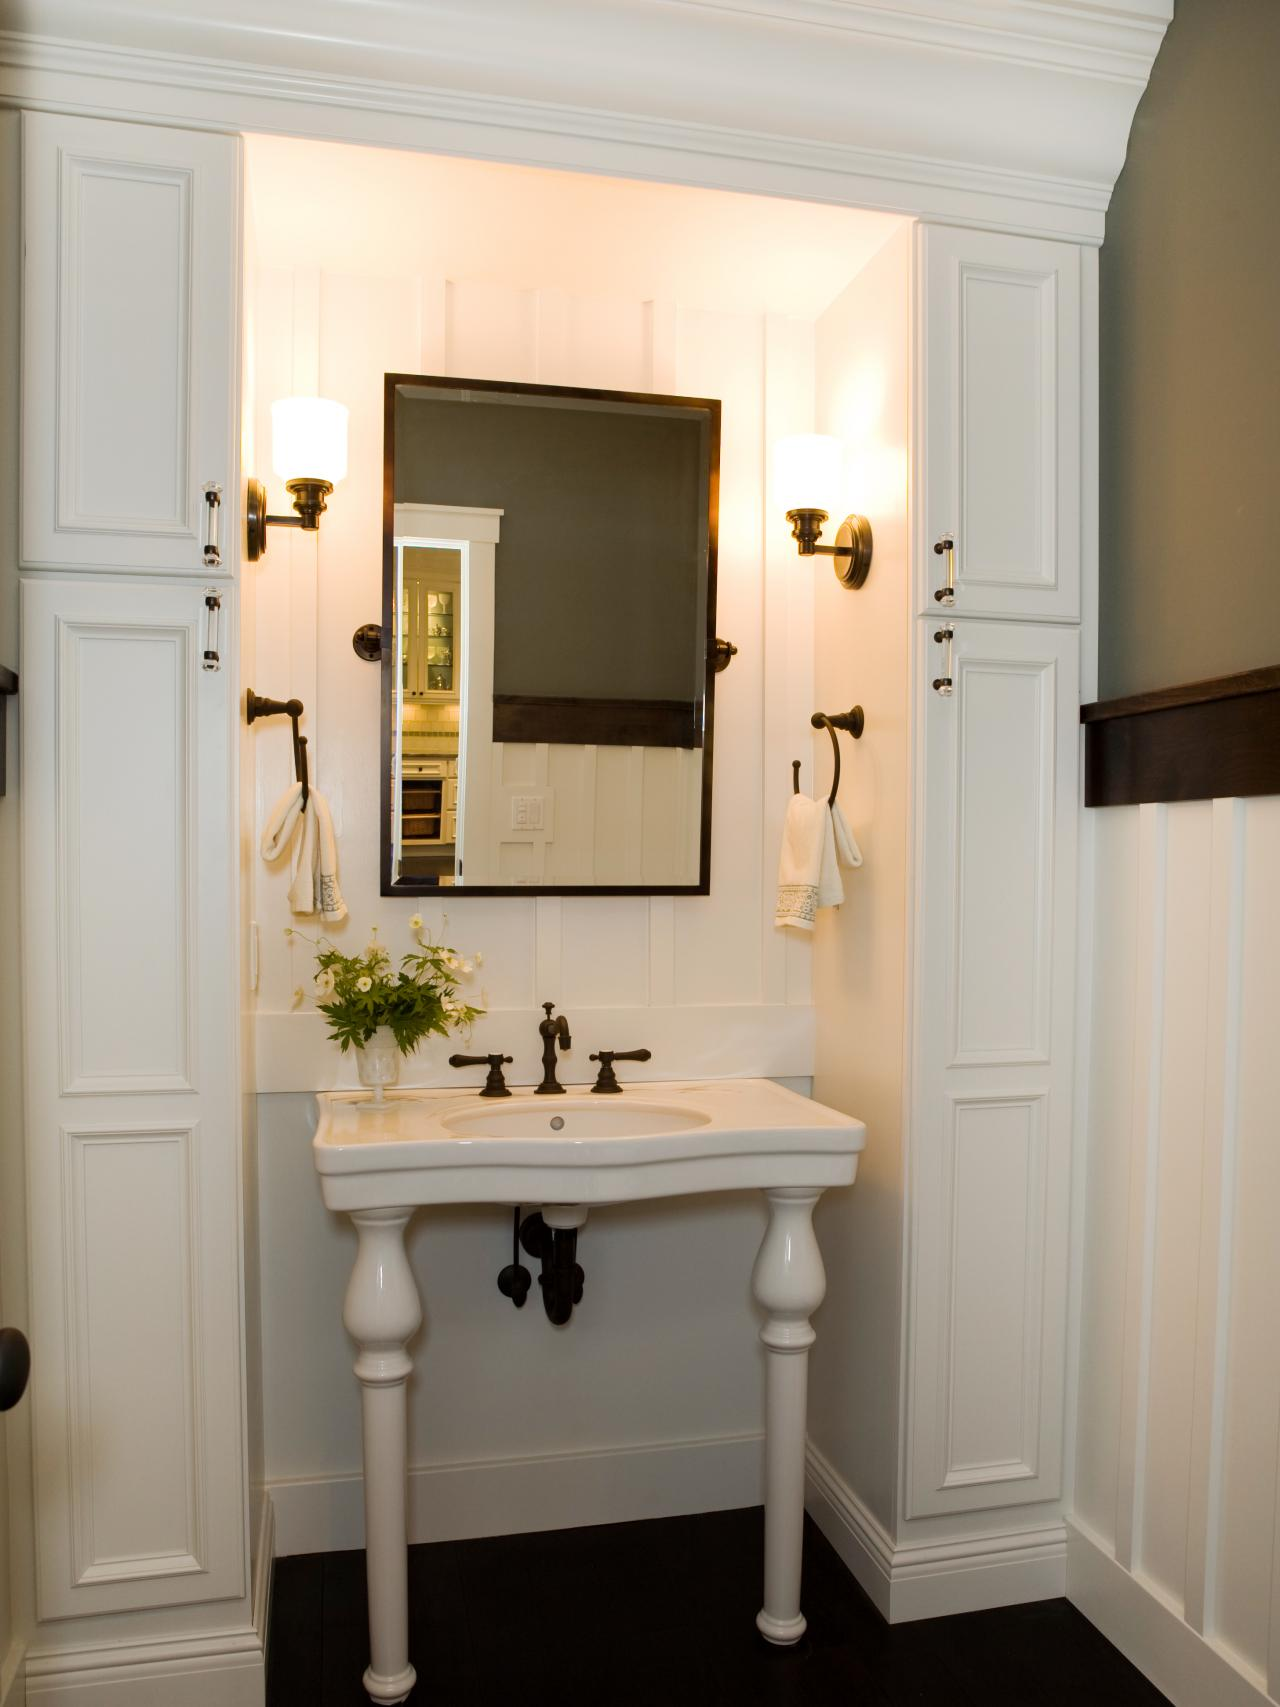 Install Classic Wall Lamps Above White Pedestal Sink Storage In  Traditlional Bathroom With Wooden Flooring